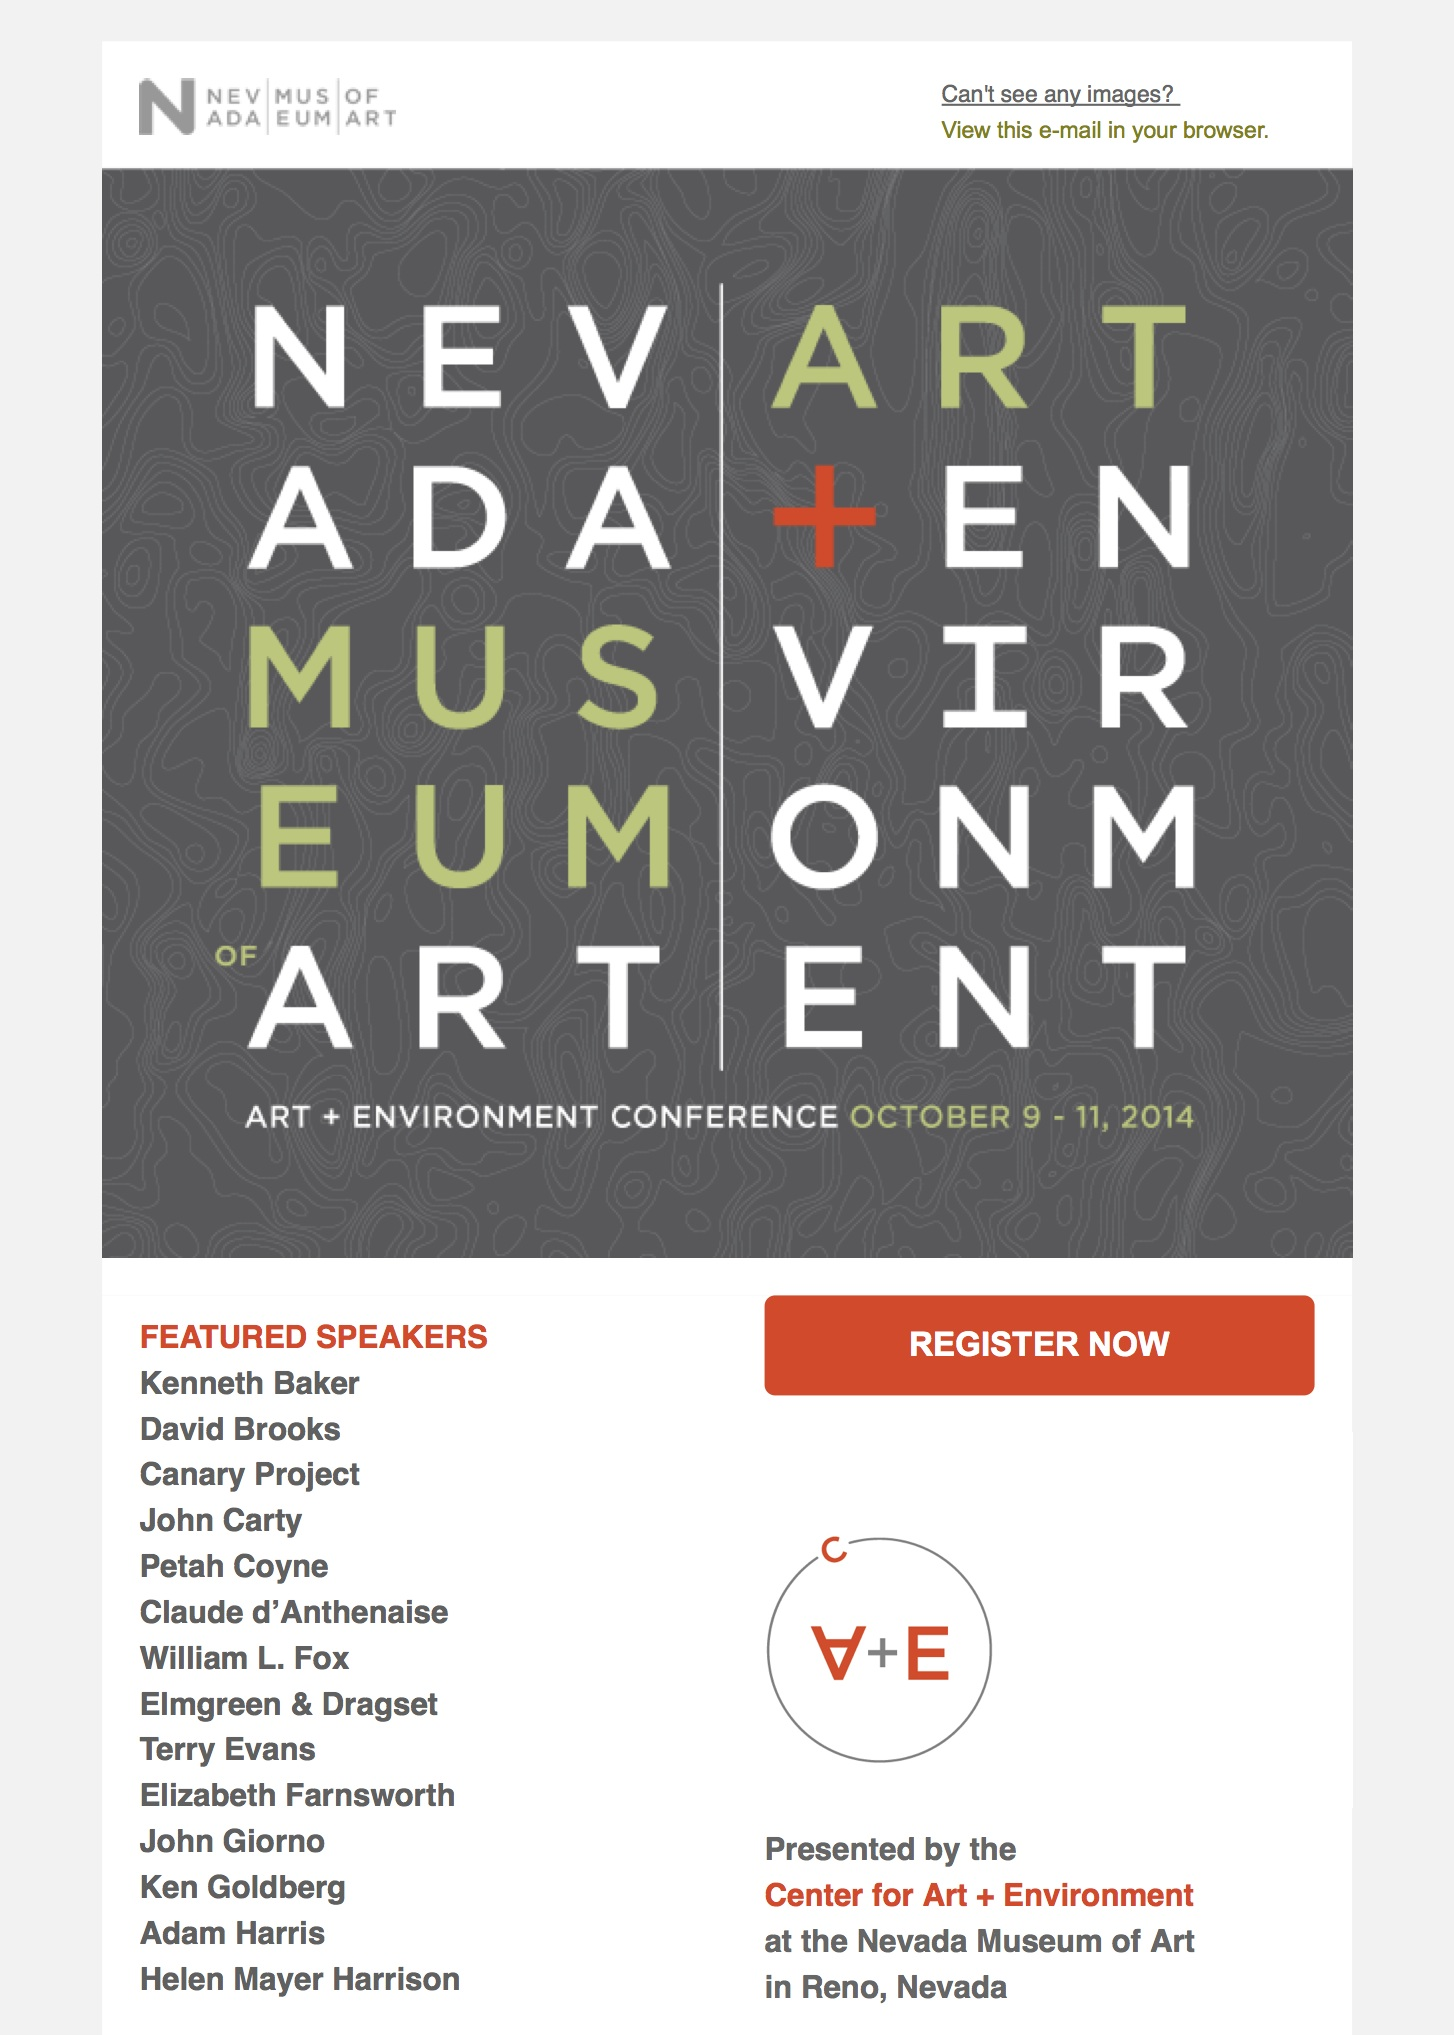 Registration now open for 2014 Art + Environment Conference